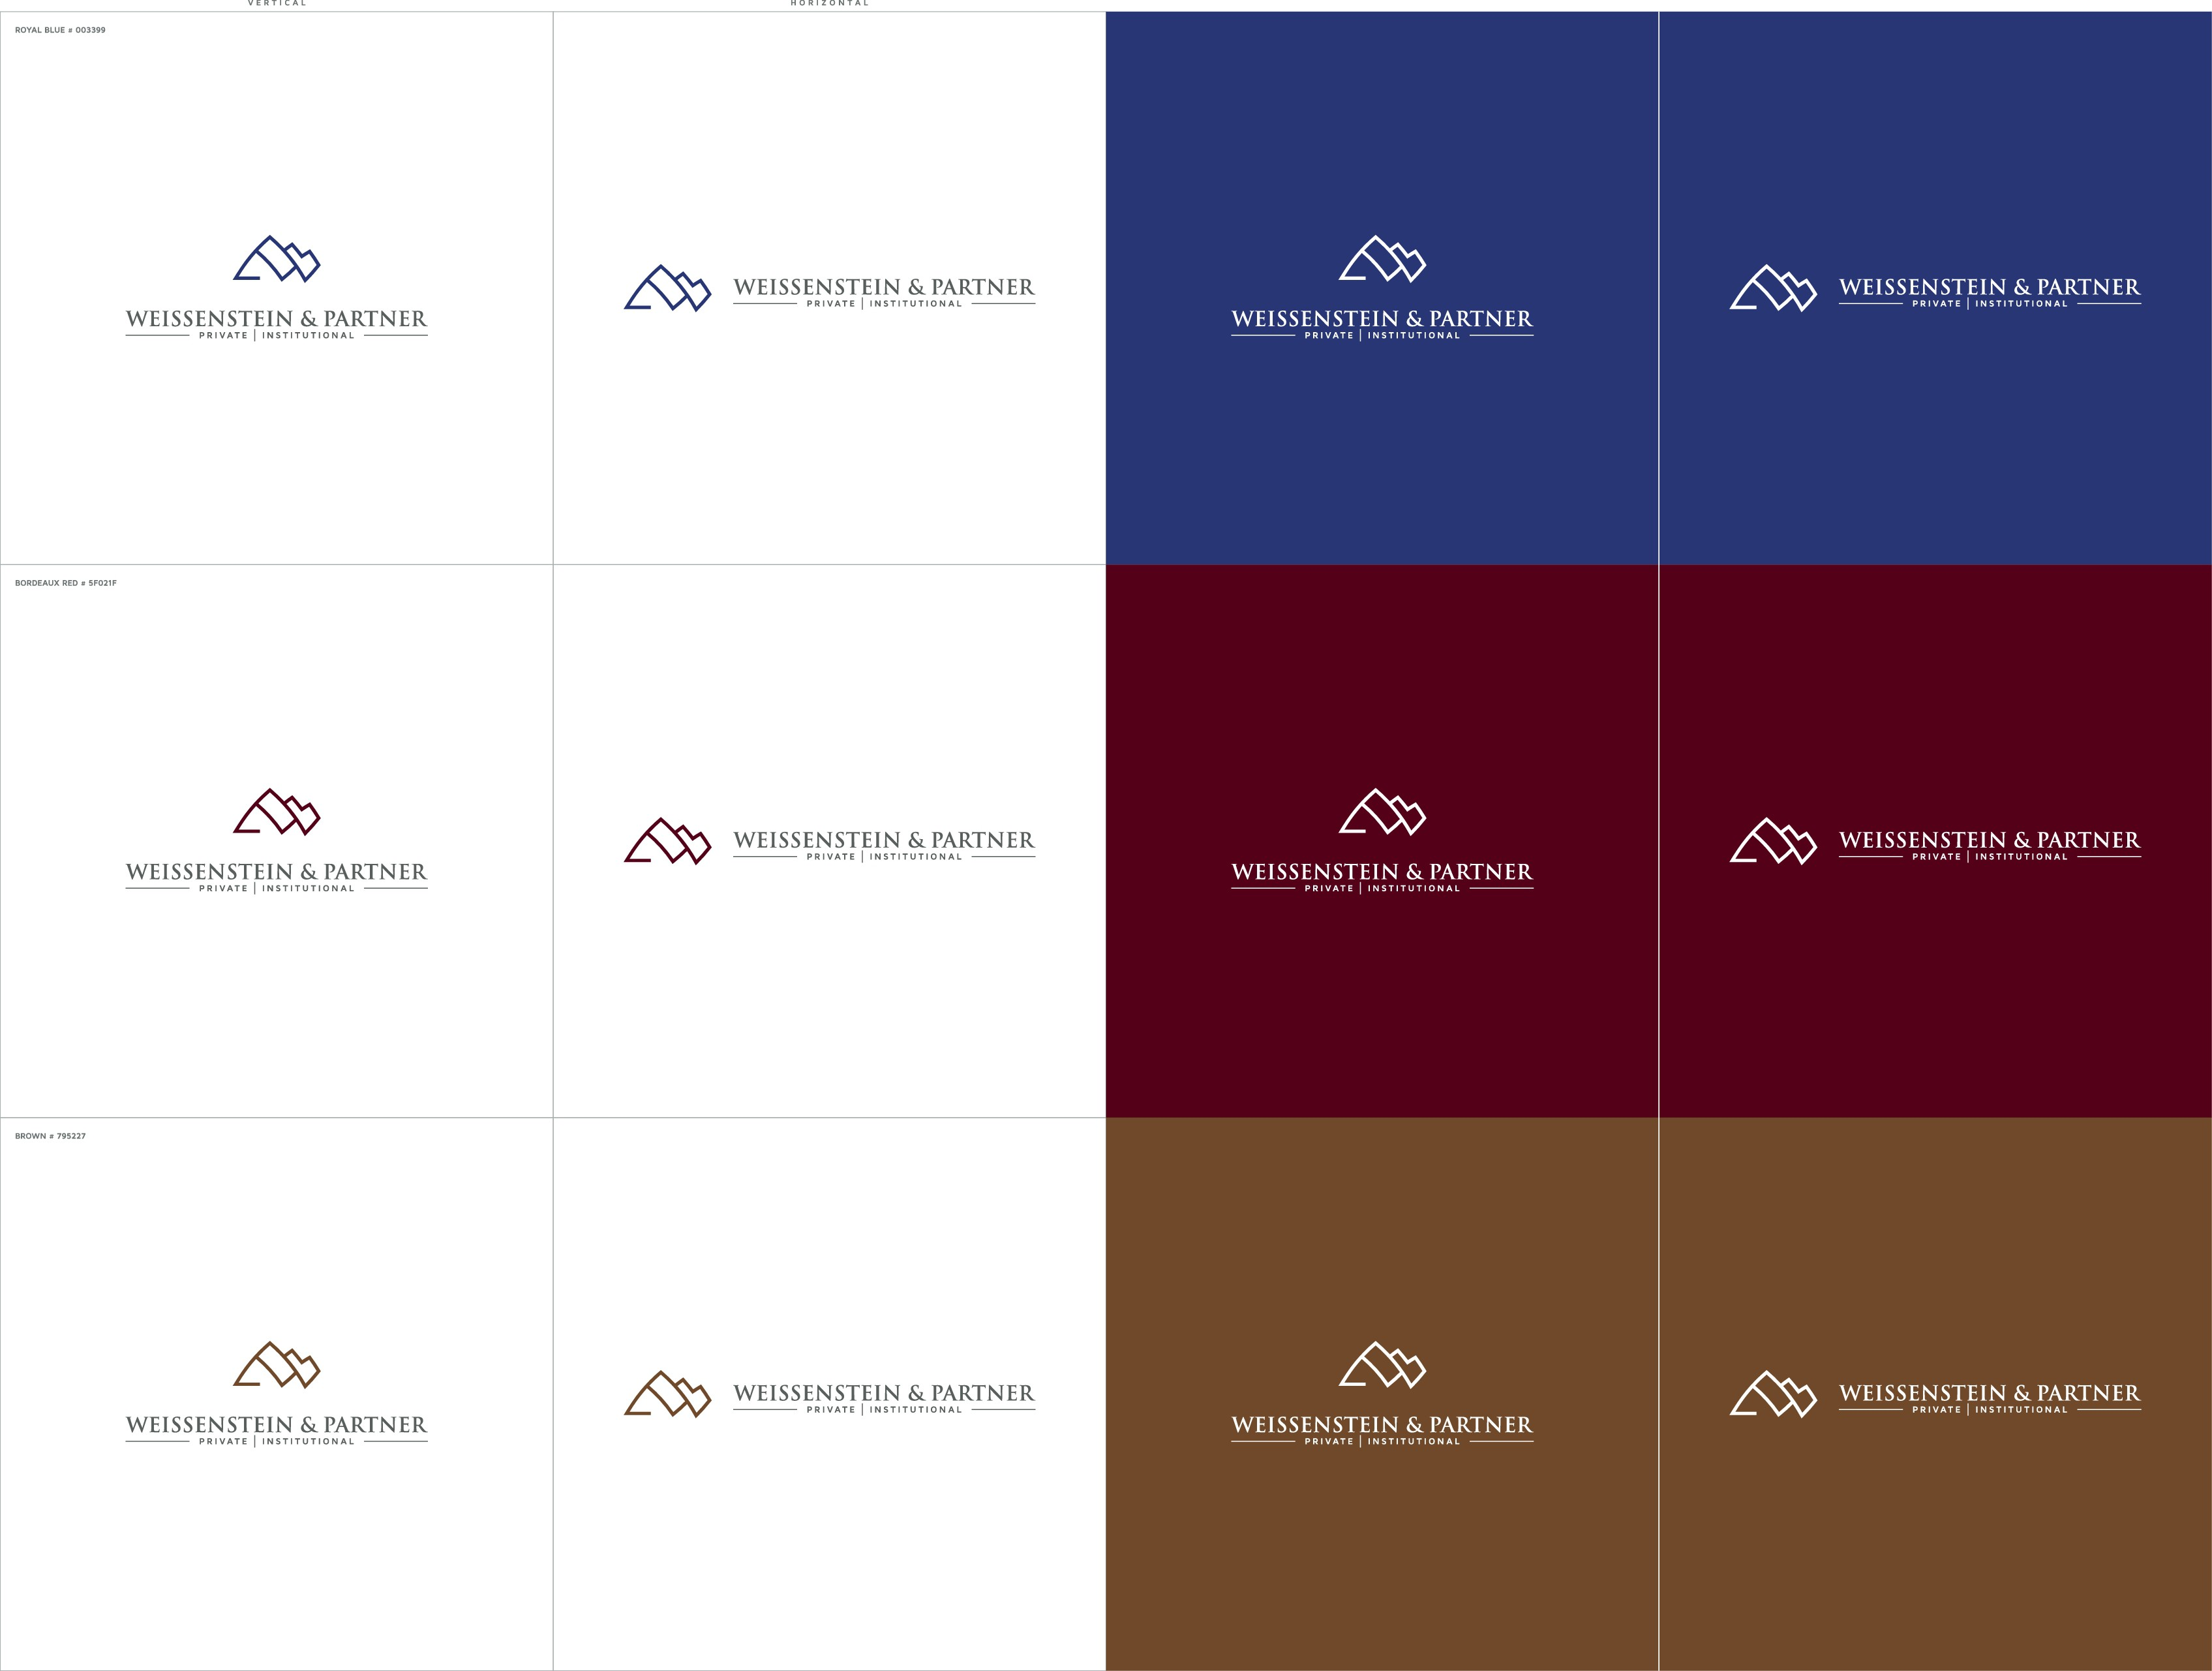 create a logo for a distinguished asset management firm